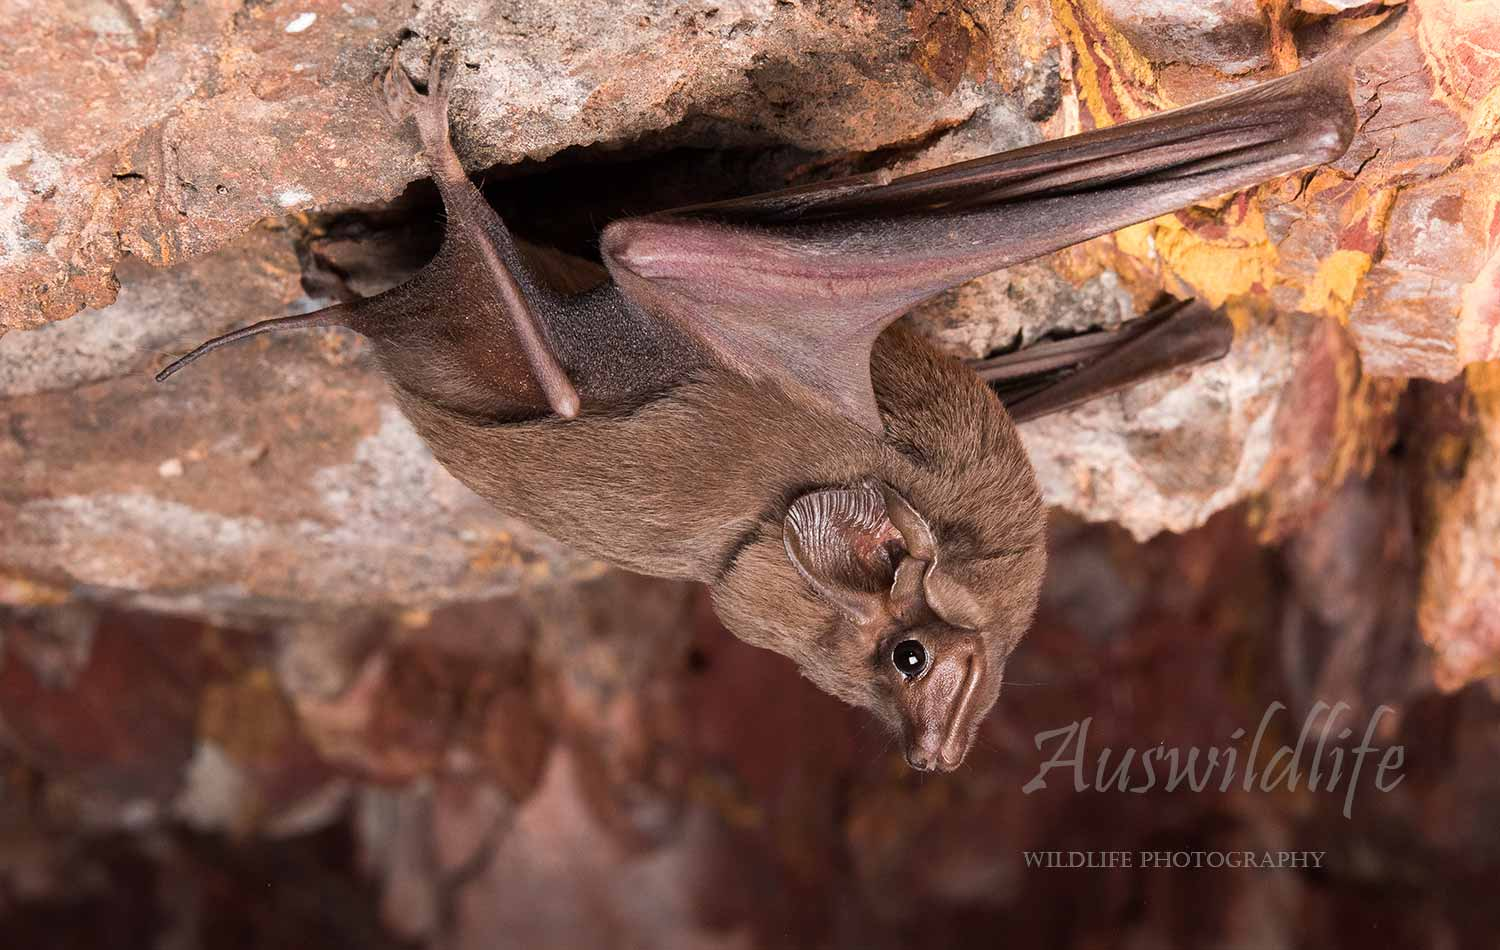 Australian wildlife stock photography - bats